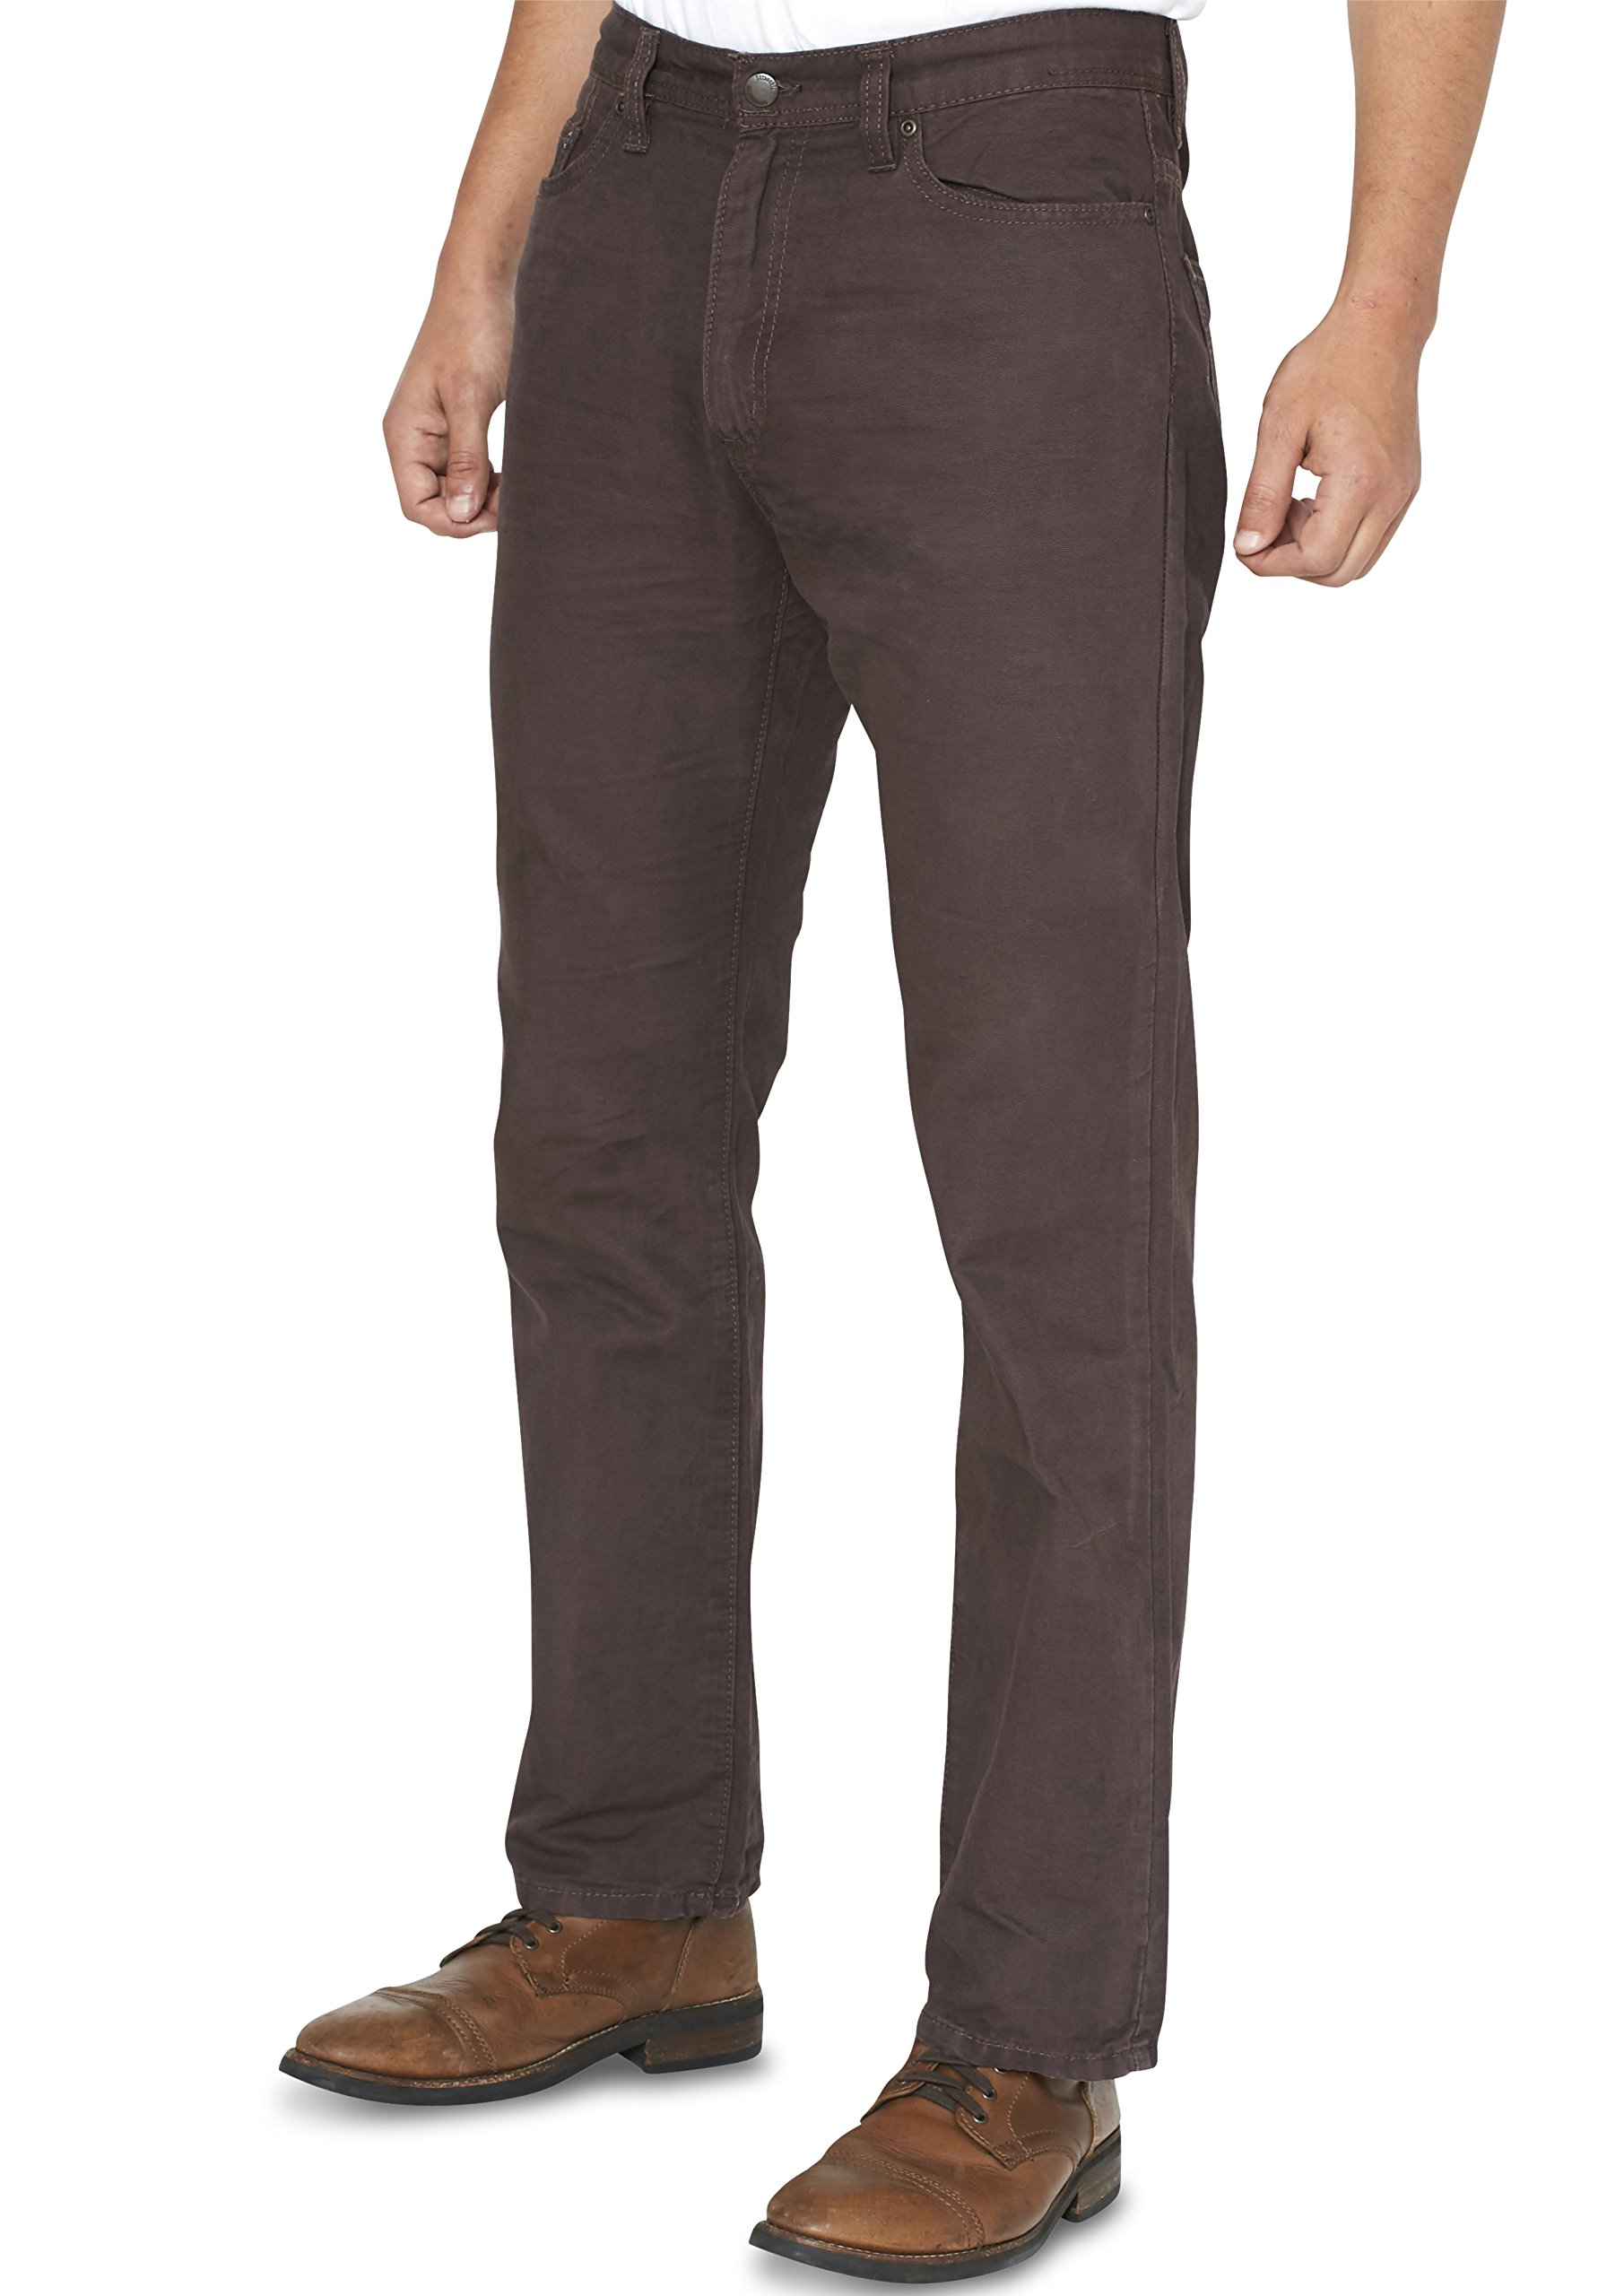 Outdoor Life Men's Straight Fit Canvas Pants – Size 36 x 30